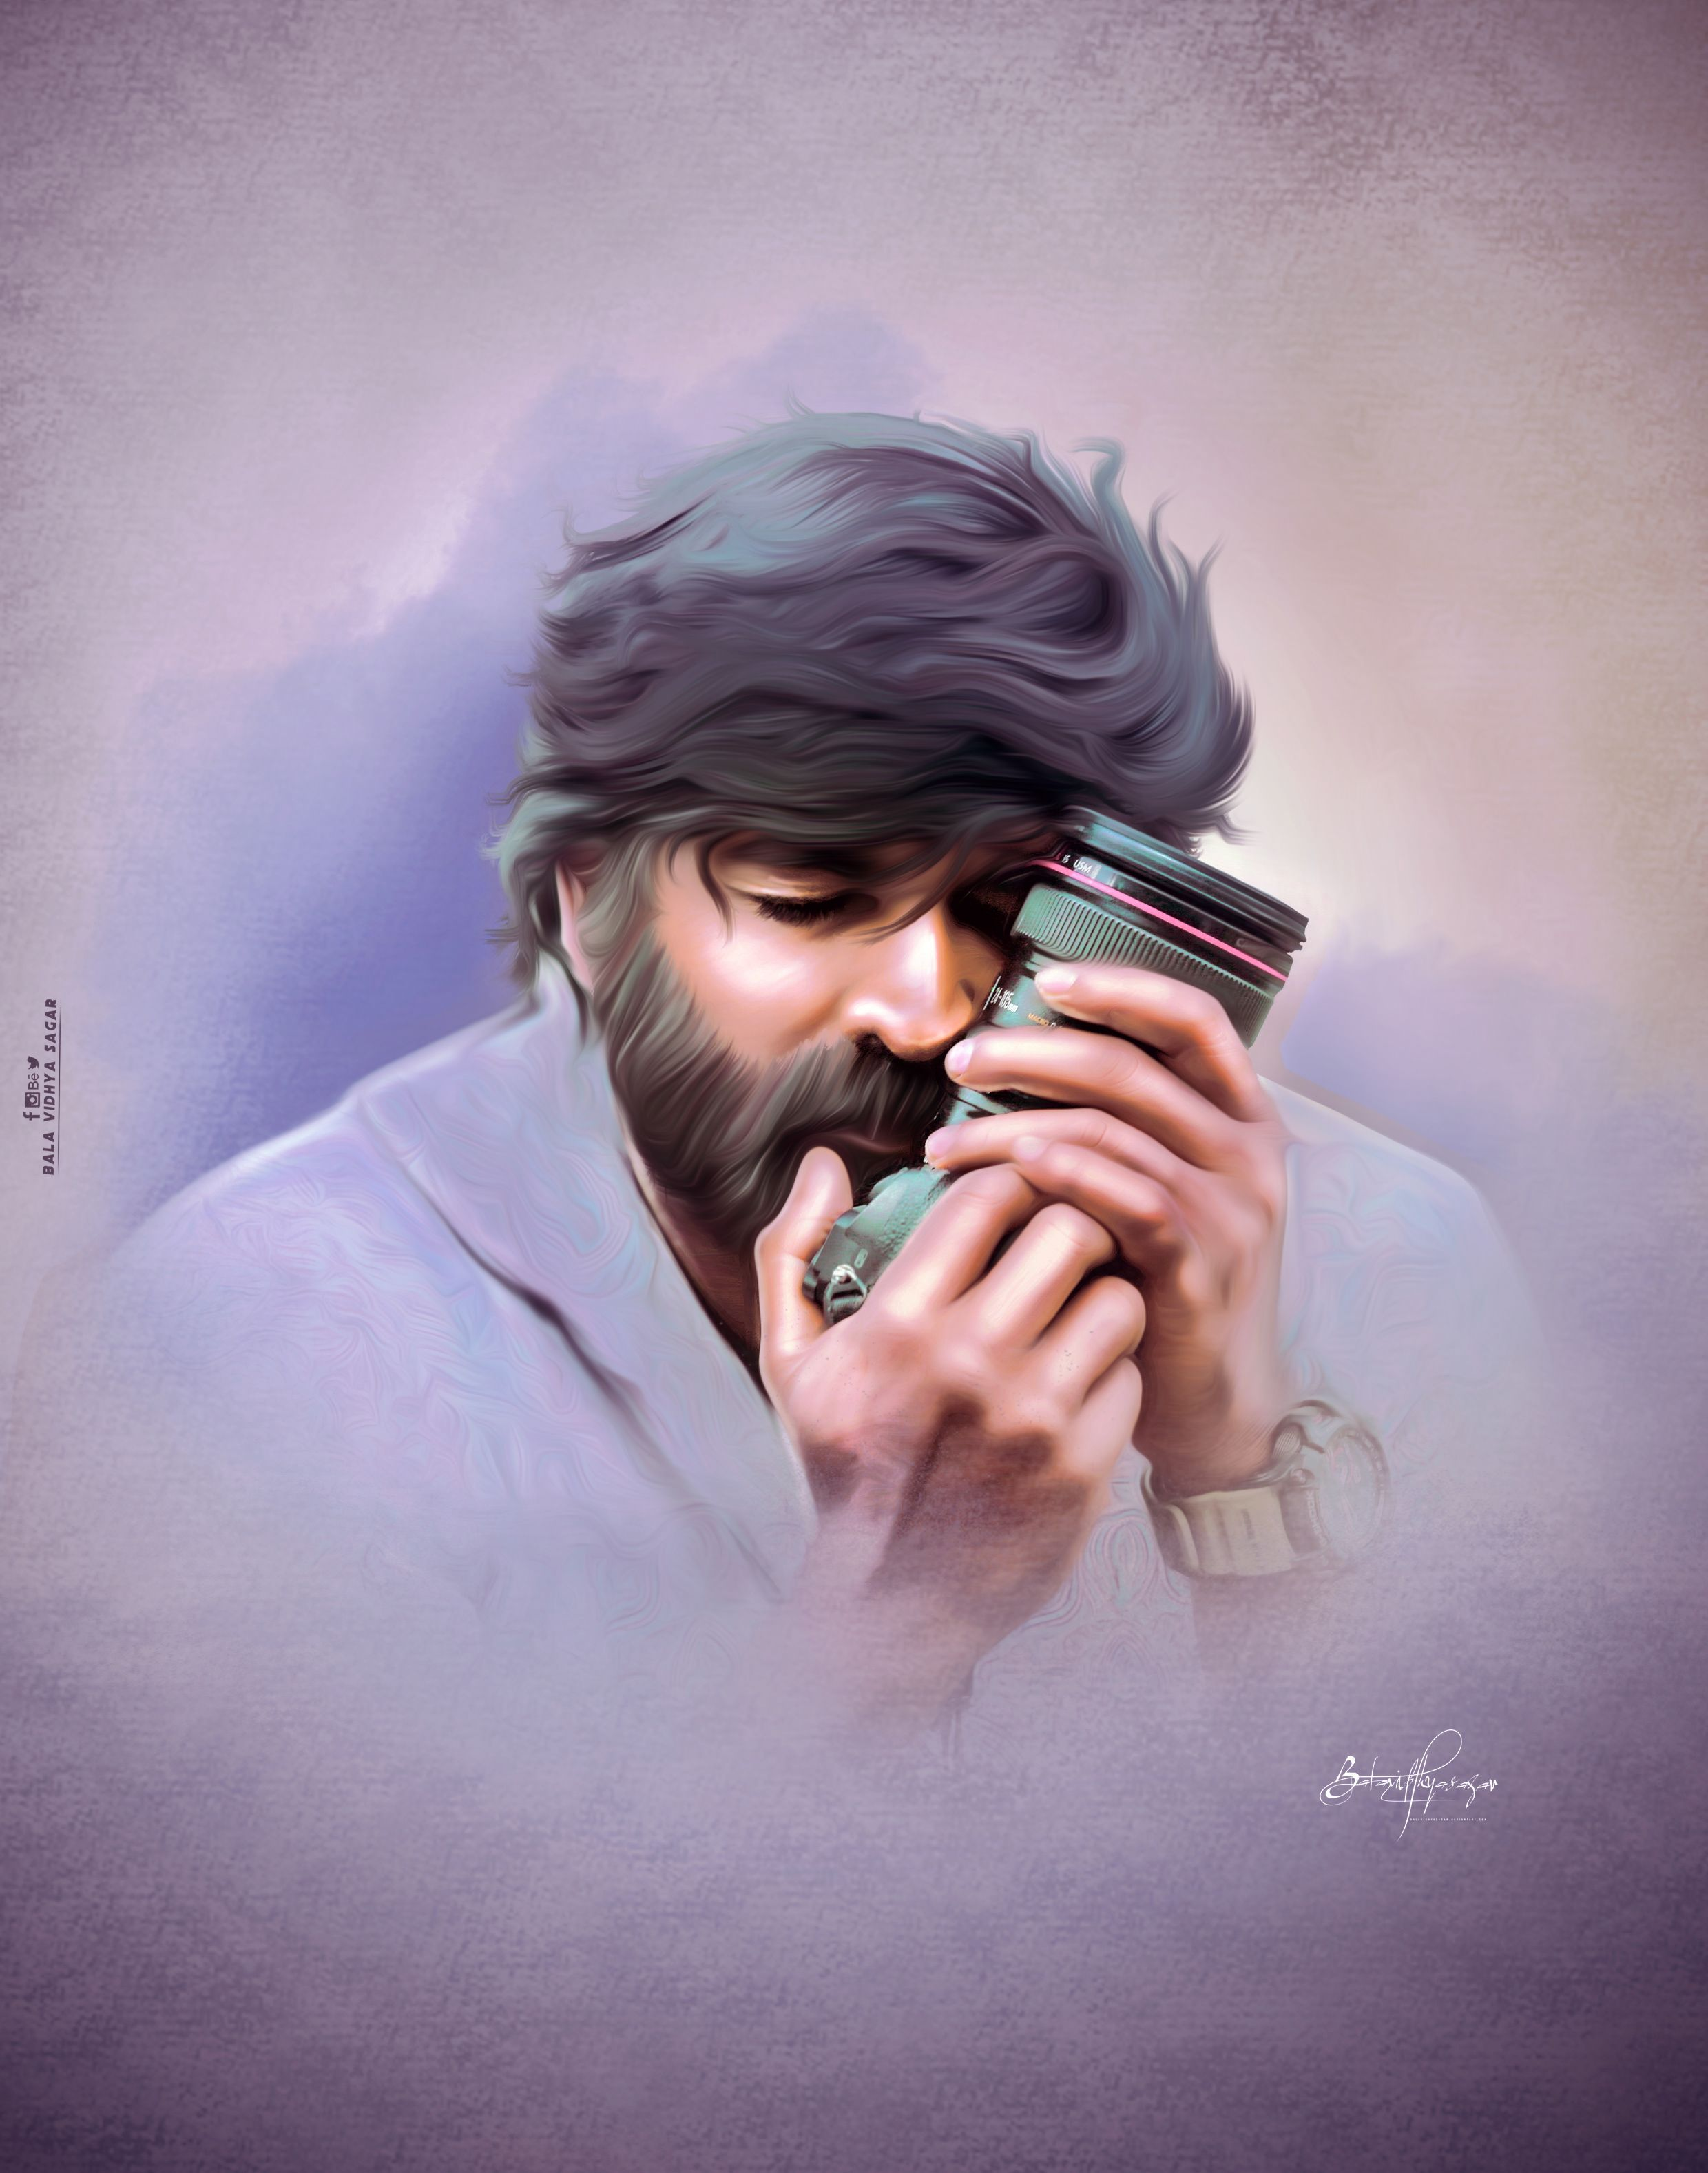 83 Vijay Sethupathi Ideas Actors Images Hd Photos Actor Photo The film has many highlights associated with the first of which is the dream combo of vijay and vijay sethupathi acting together as the hero and villain respectively. actors images hd photos